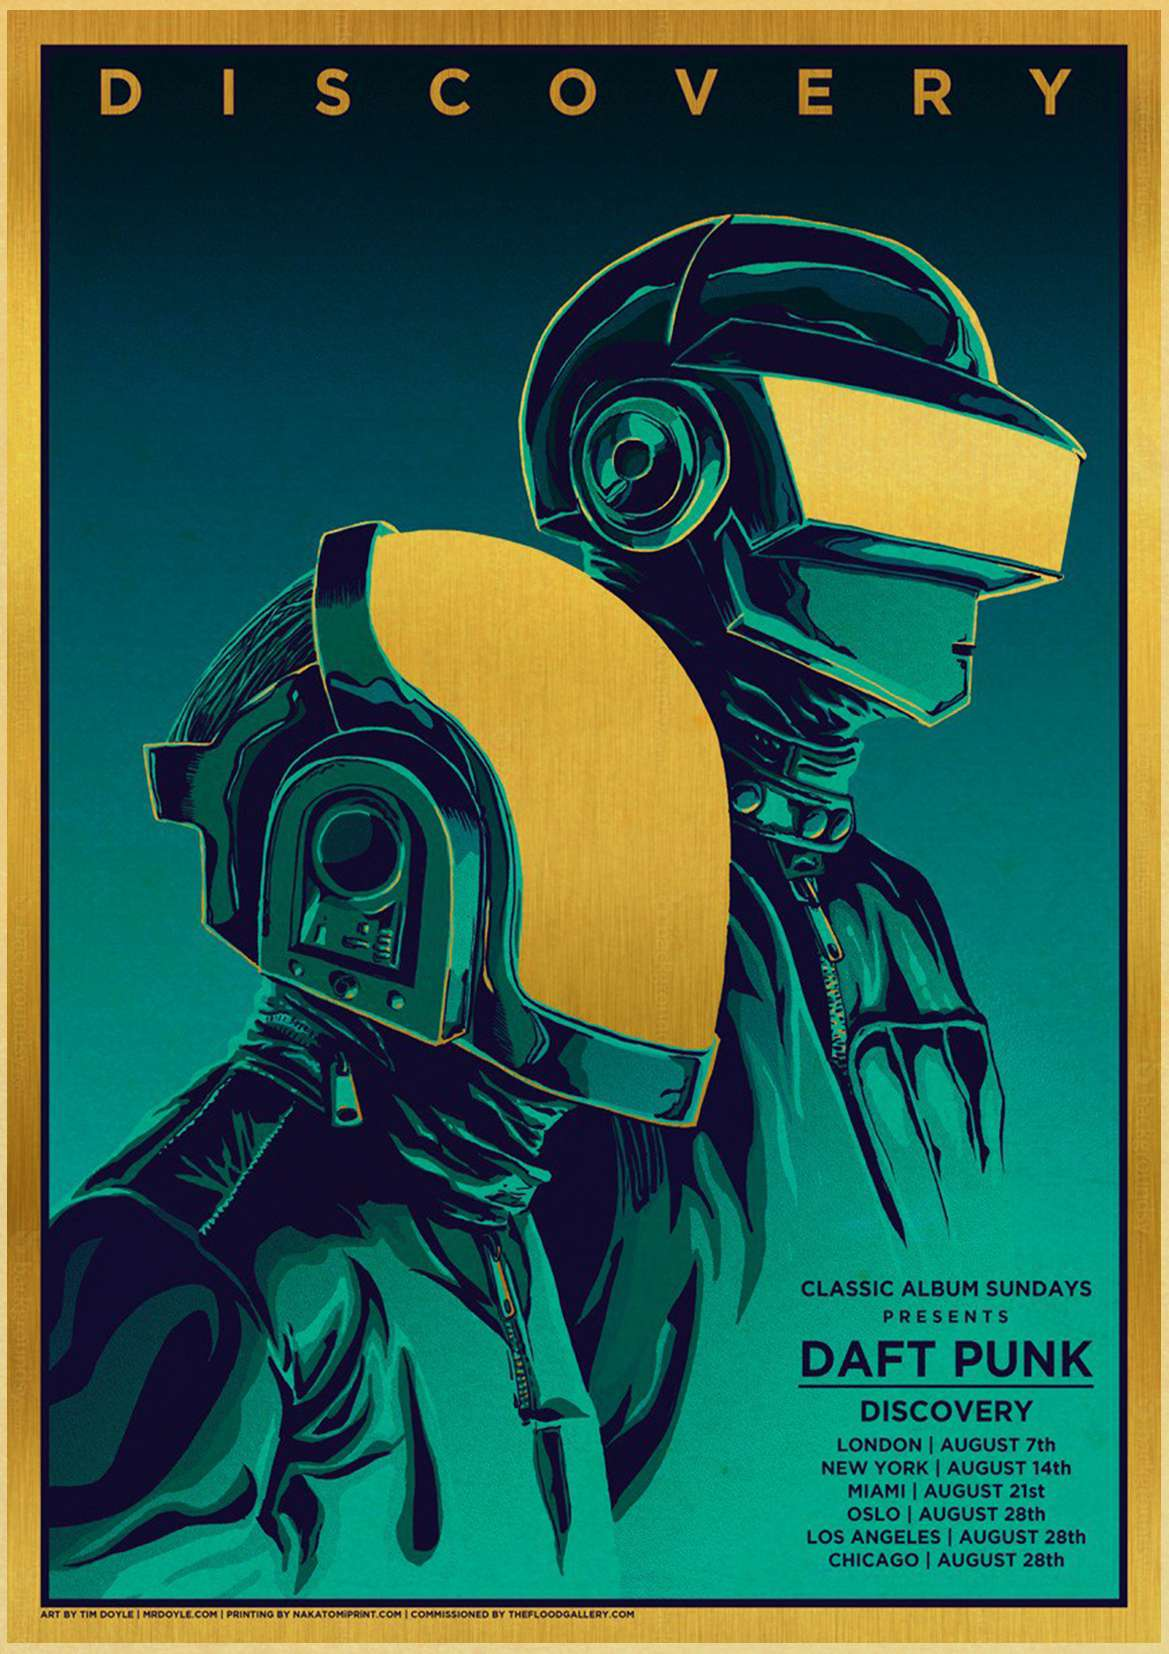 US $1 81 11% OFF|The Daft Punk rock music band Poster Wall Stickers Vintage  Poster Prints High Quality For Bar And Home Decor-in Painting &